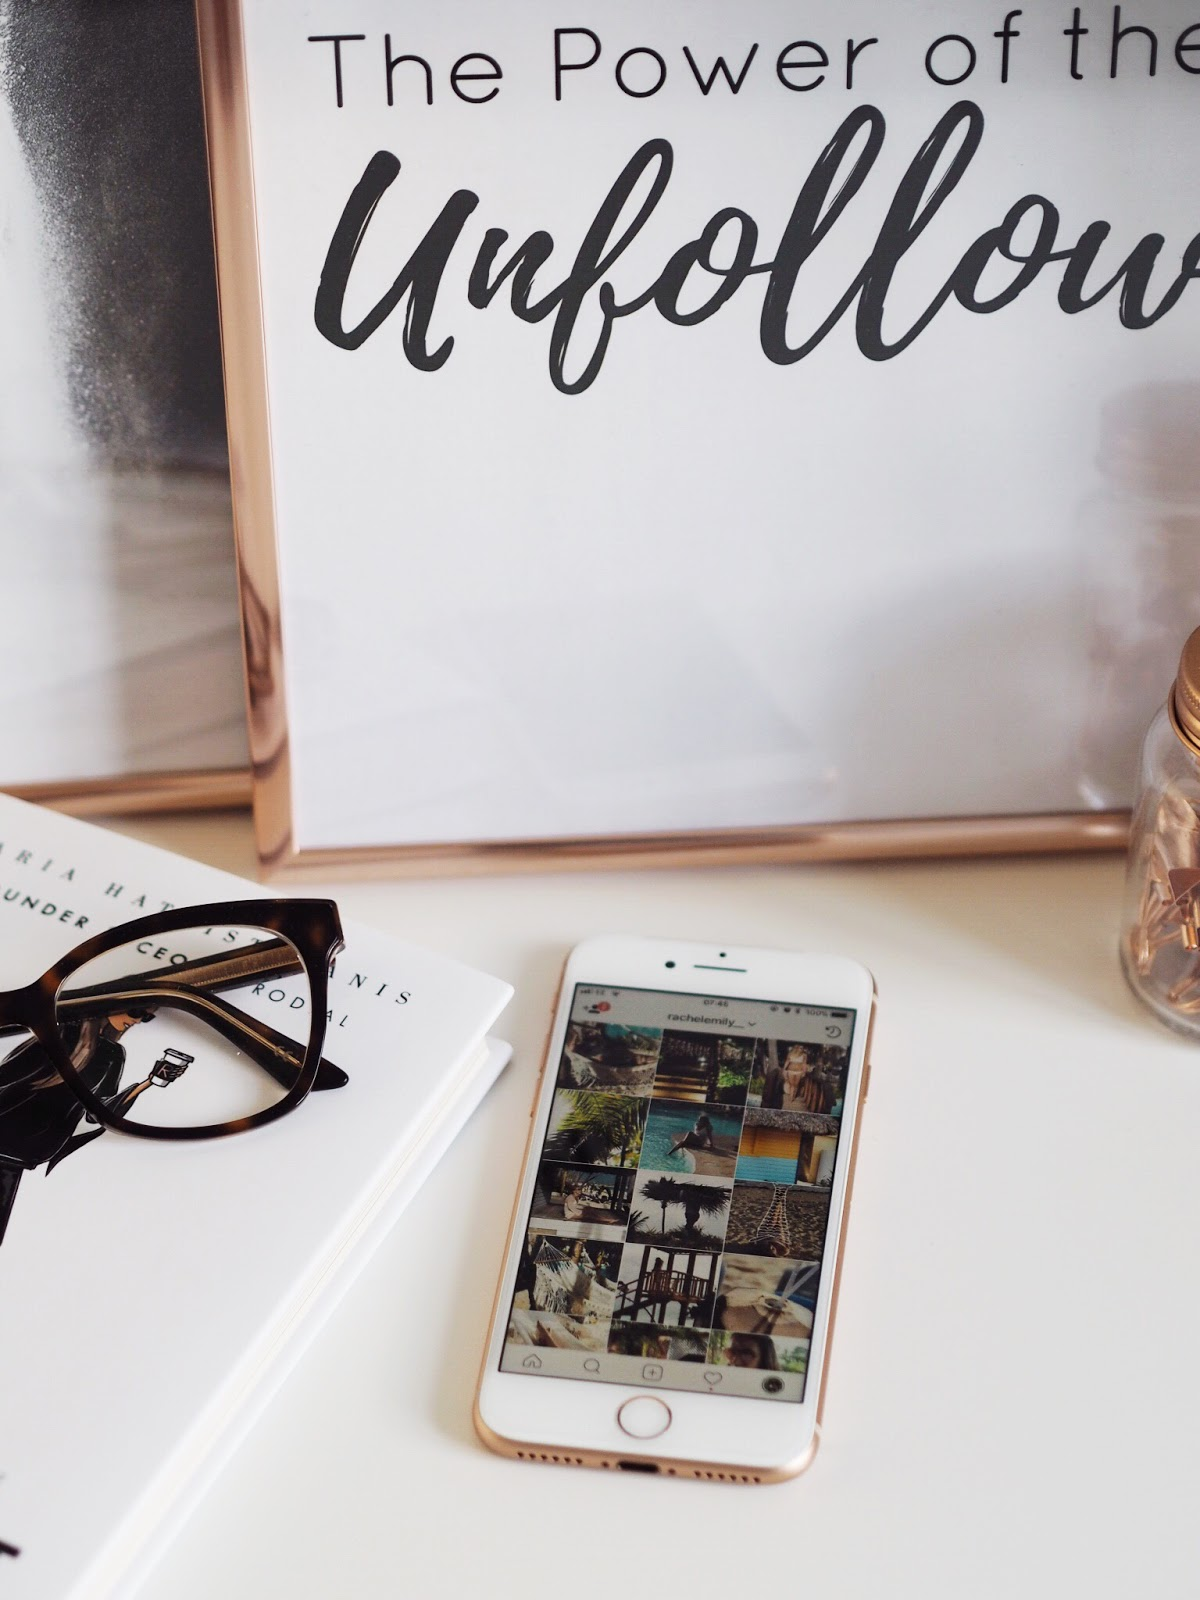 iphone 8 with RachelEmily__ instagram, glasses and the power of the unfollow poster in copper frame